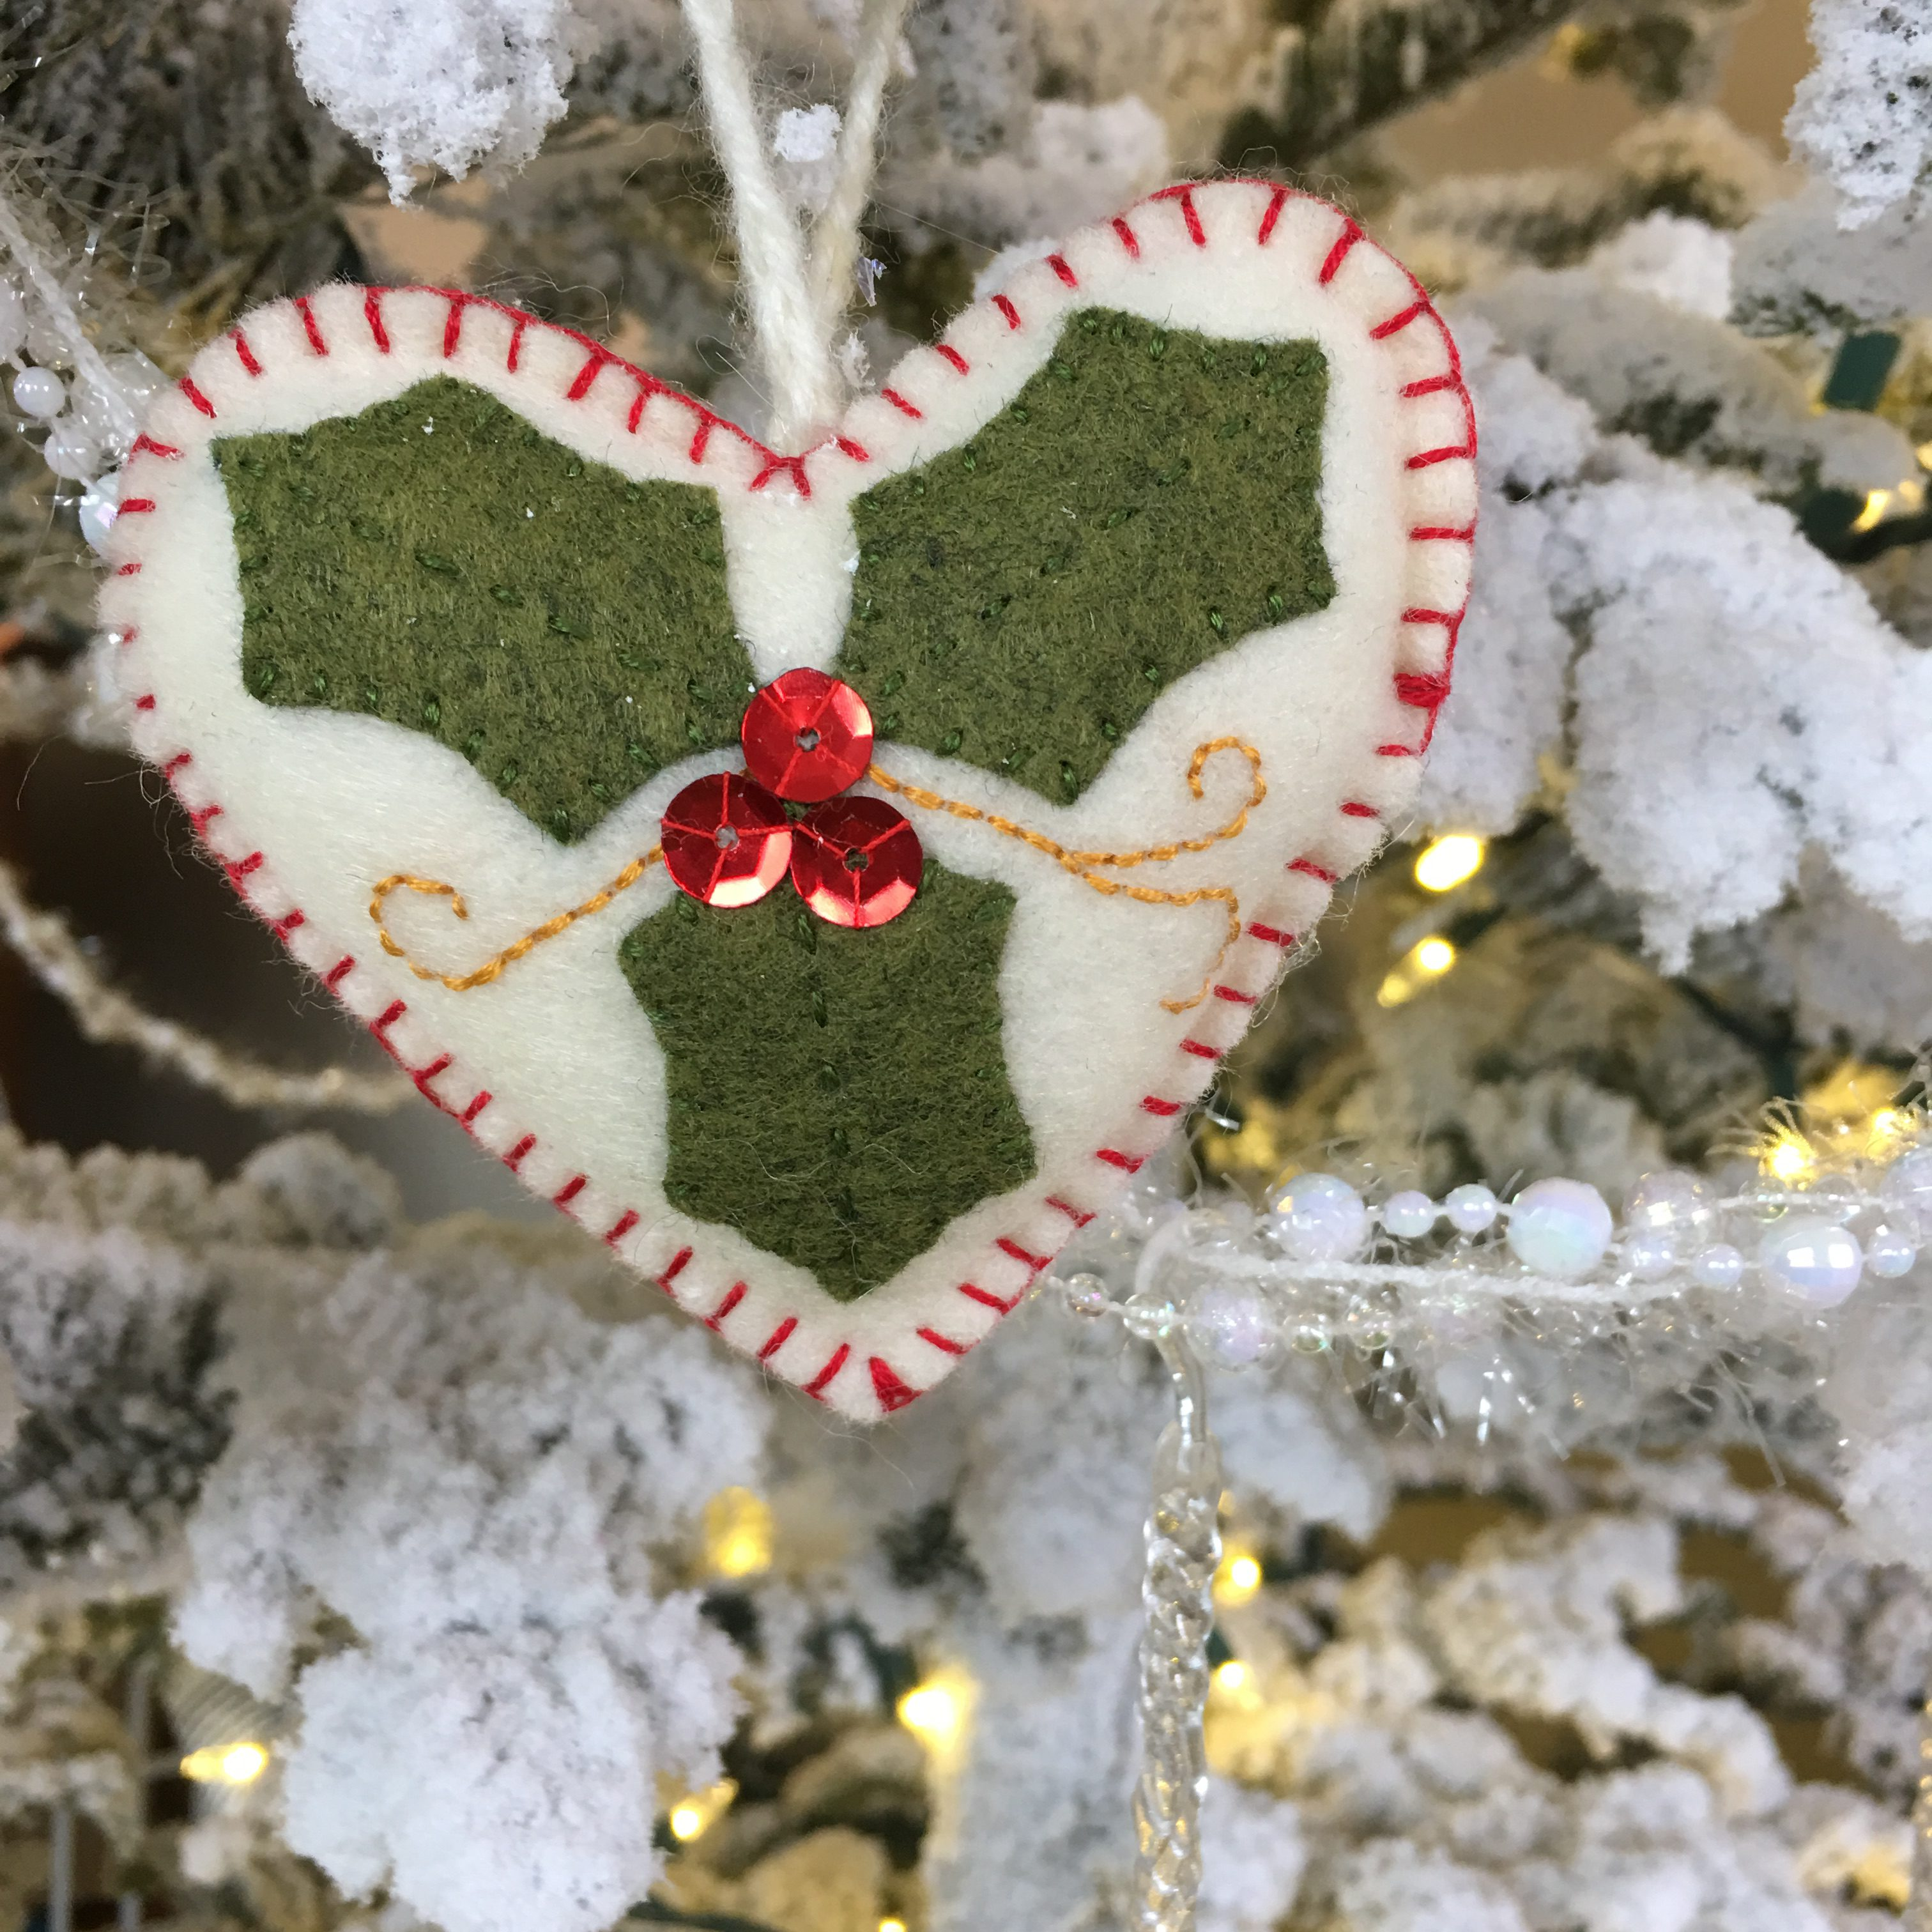 make some fun and easy ornaments for your tree this year with some simple supplies and basic skills you can stitch the leaves on the heart or glue them in